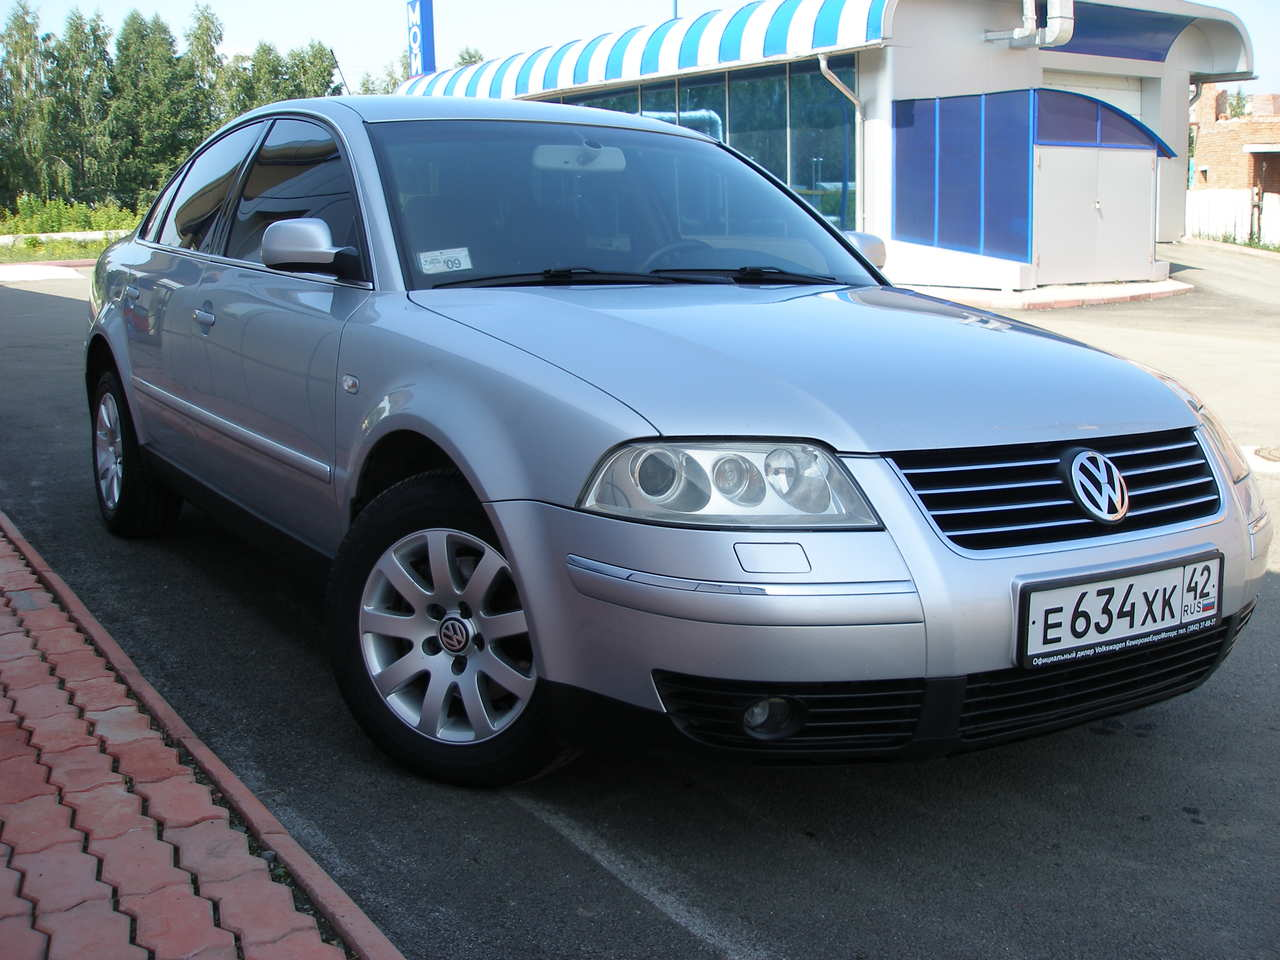 used 2001 volkswagen passat photos 1800cc gasoline ff automatic for sale. Black Bedroom Furniture Sets. Home Design Ideas